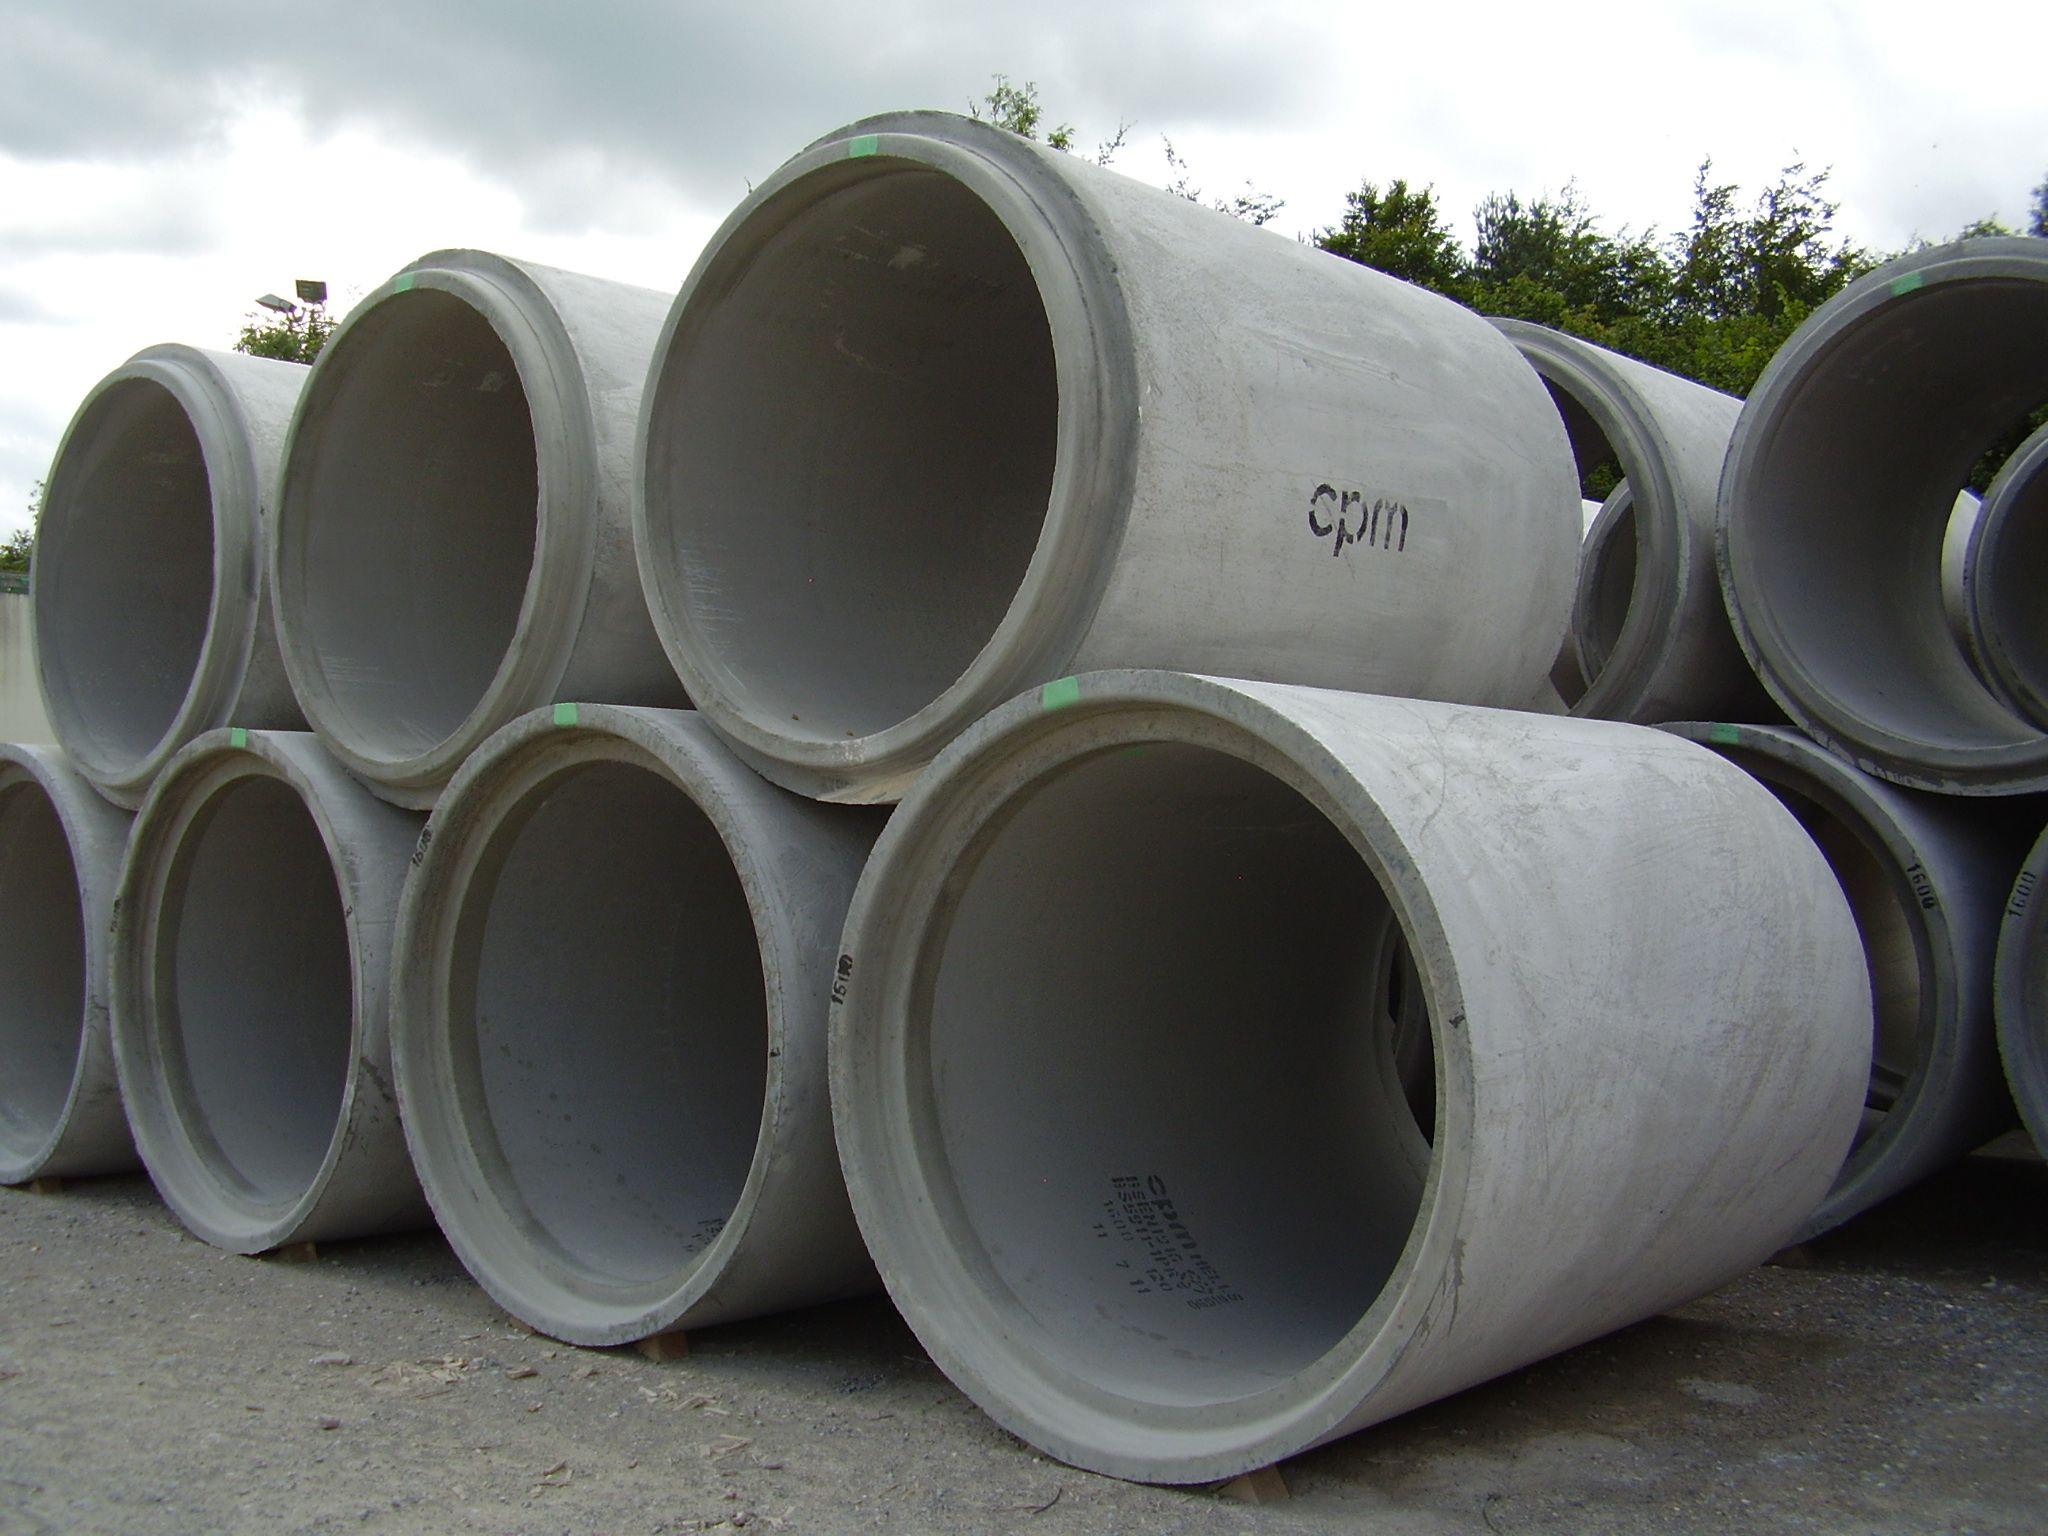 Cpm Manufacture Pipes Made From Precast Concrete From 225mm To 1800mm For Further Information Please Visit Http Www C Precast Concrete Concrete Garden Beds